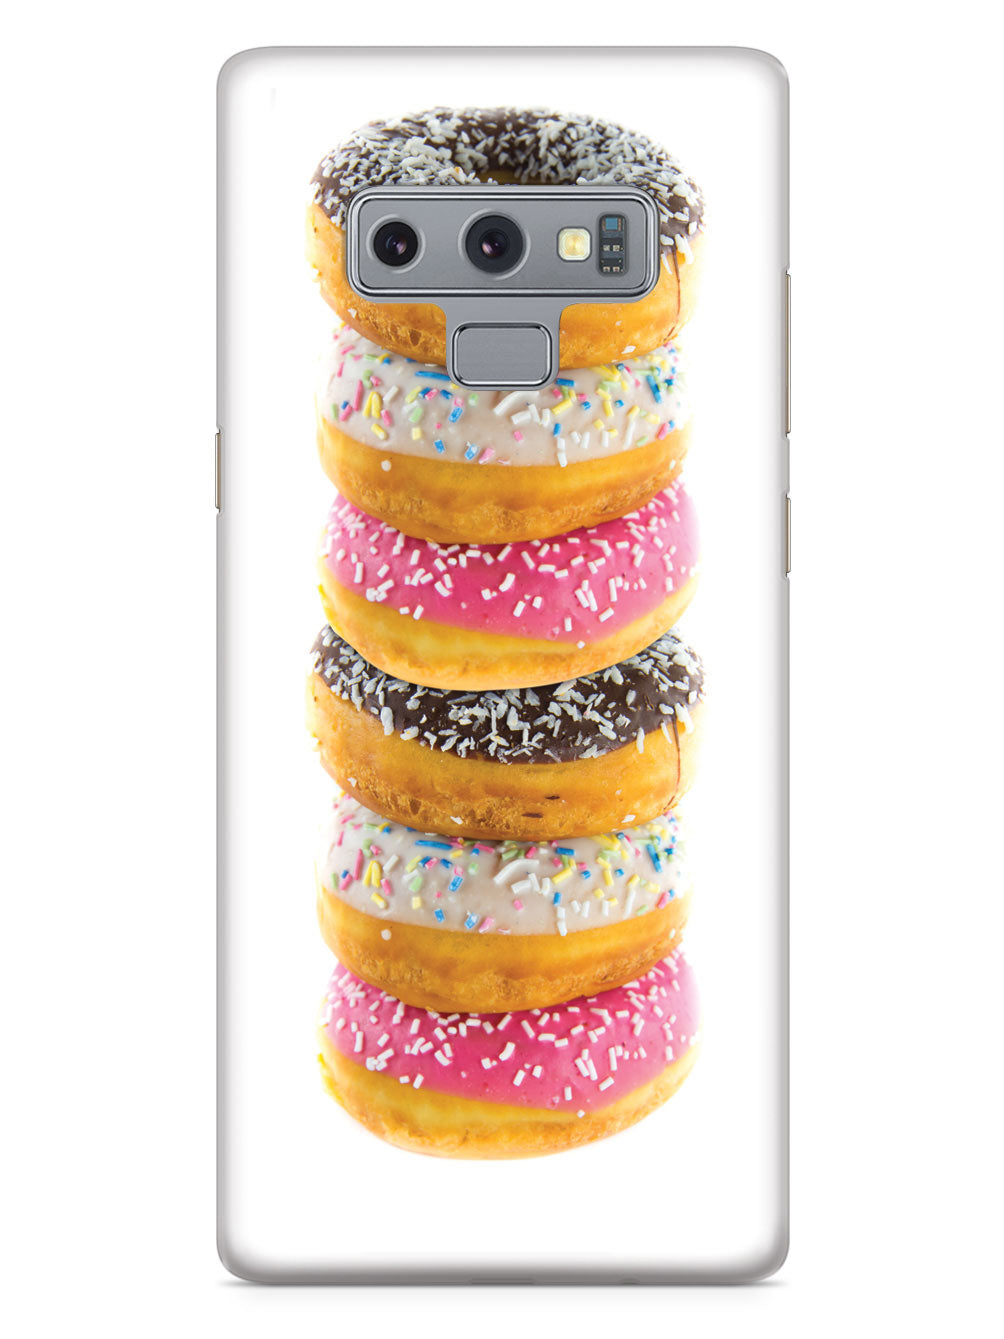 Stack o' Donuts Case